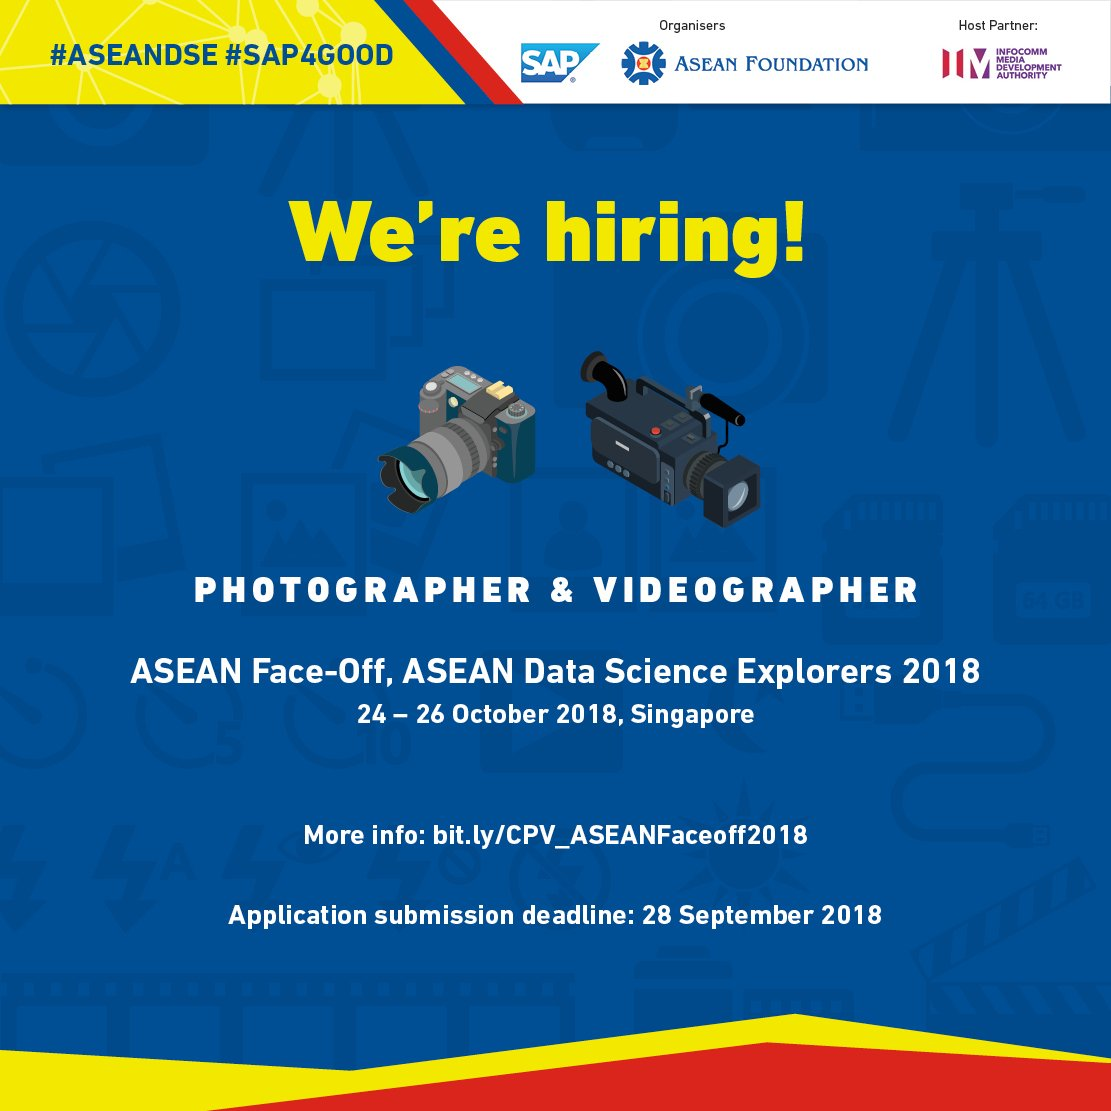 Asean Foundation On Twitter We Re Looking For An Experienced Photographer And Videographer For Aseandse Regional Finals Chosen Candidate Will Be Responsible For Producing And Editing High Quality Photographs Videos Of The